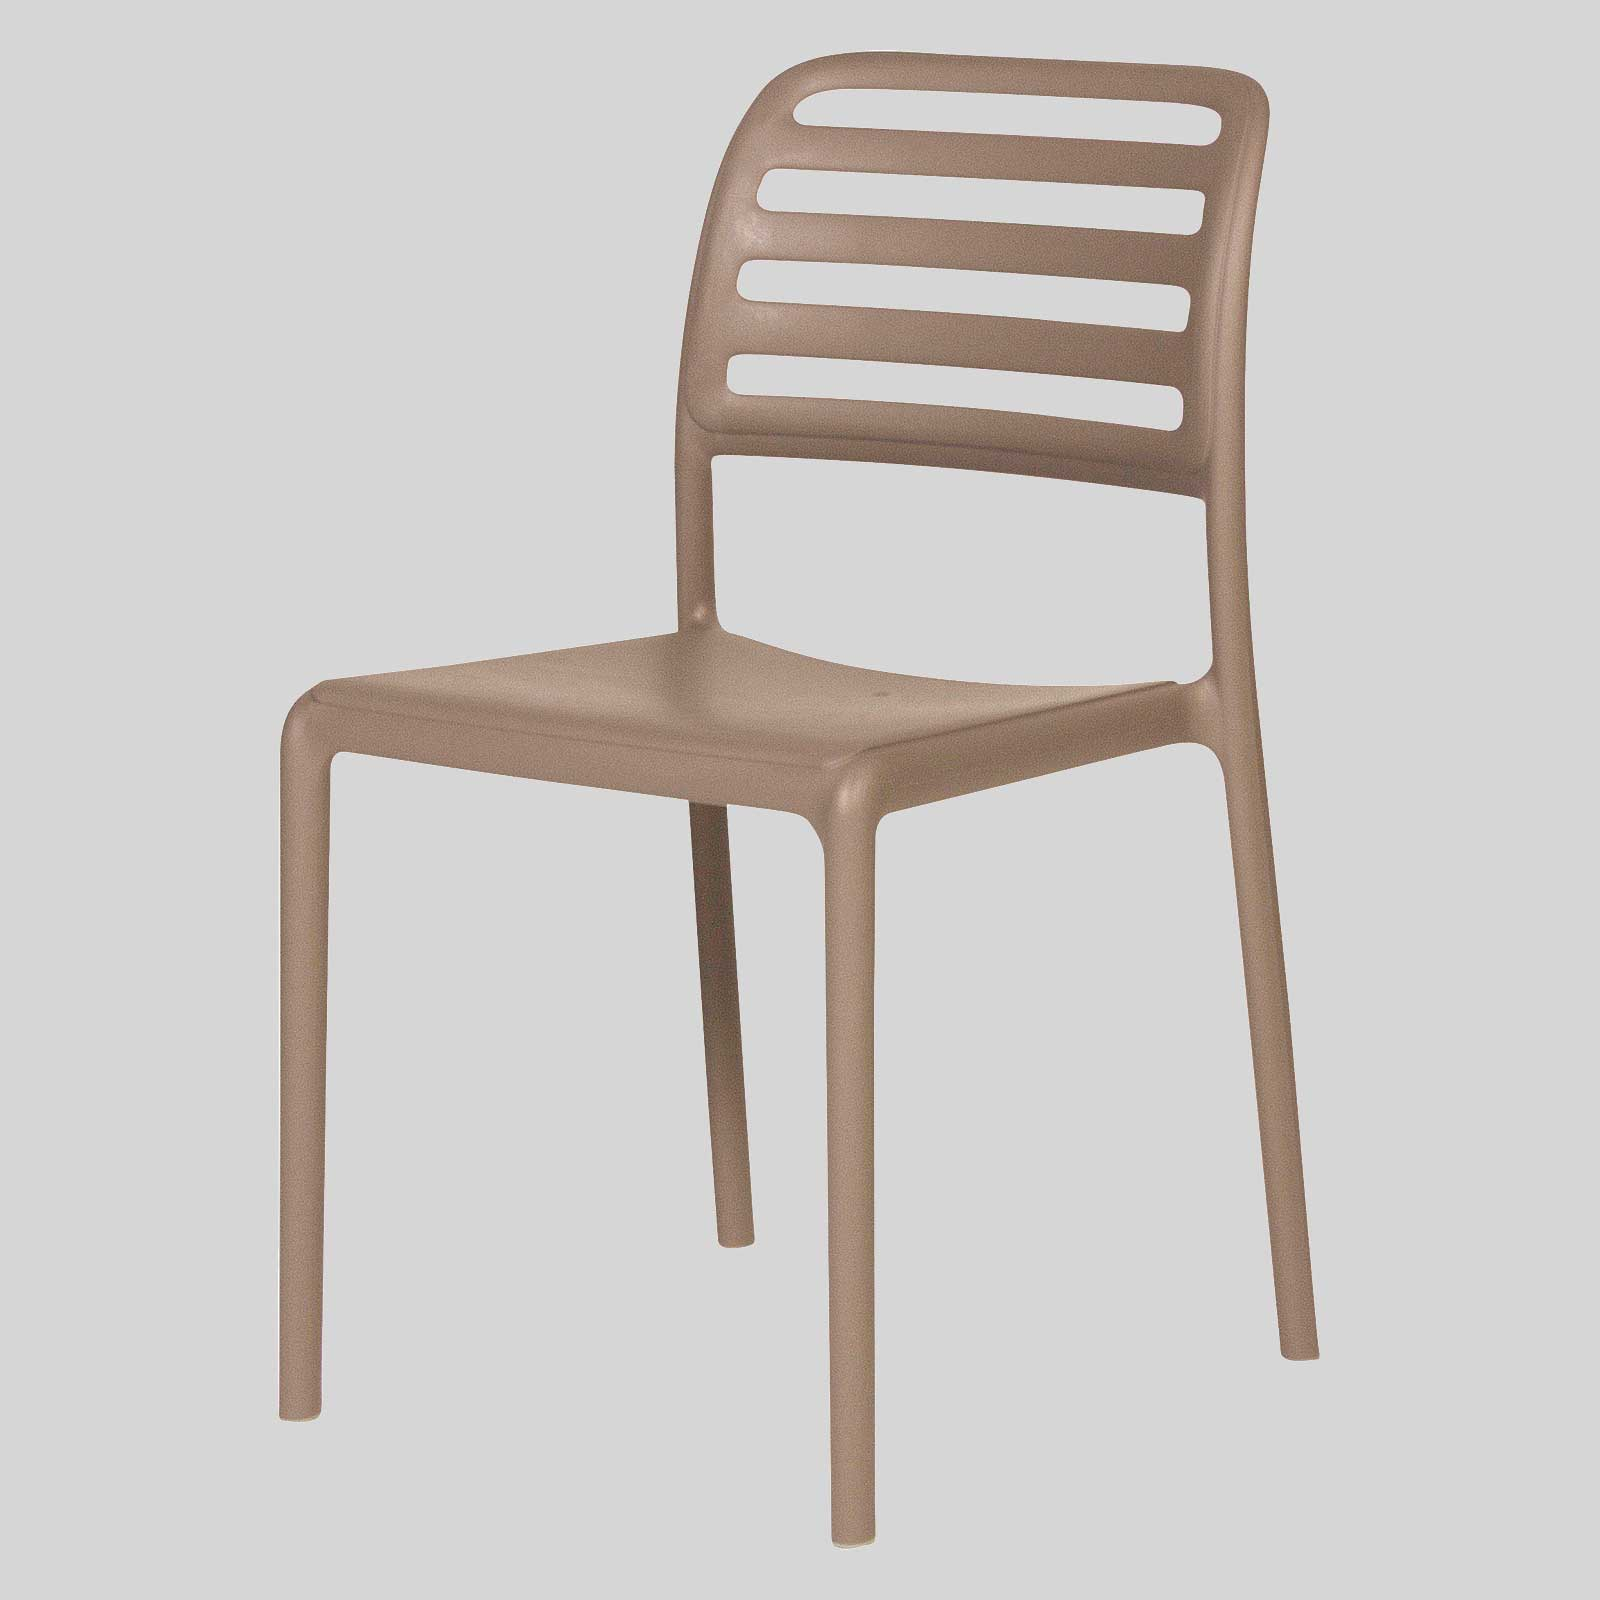 Outdoor cafe chairs - Bosca Outdoor Cafe Chairs Taupe